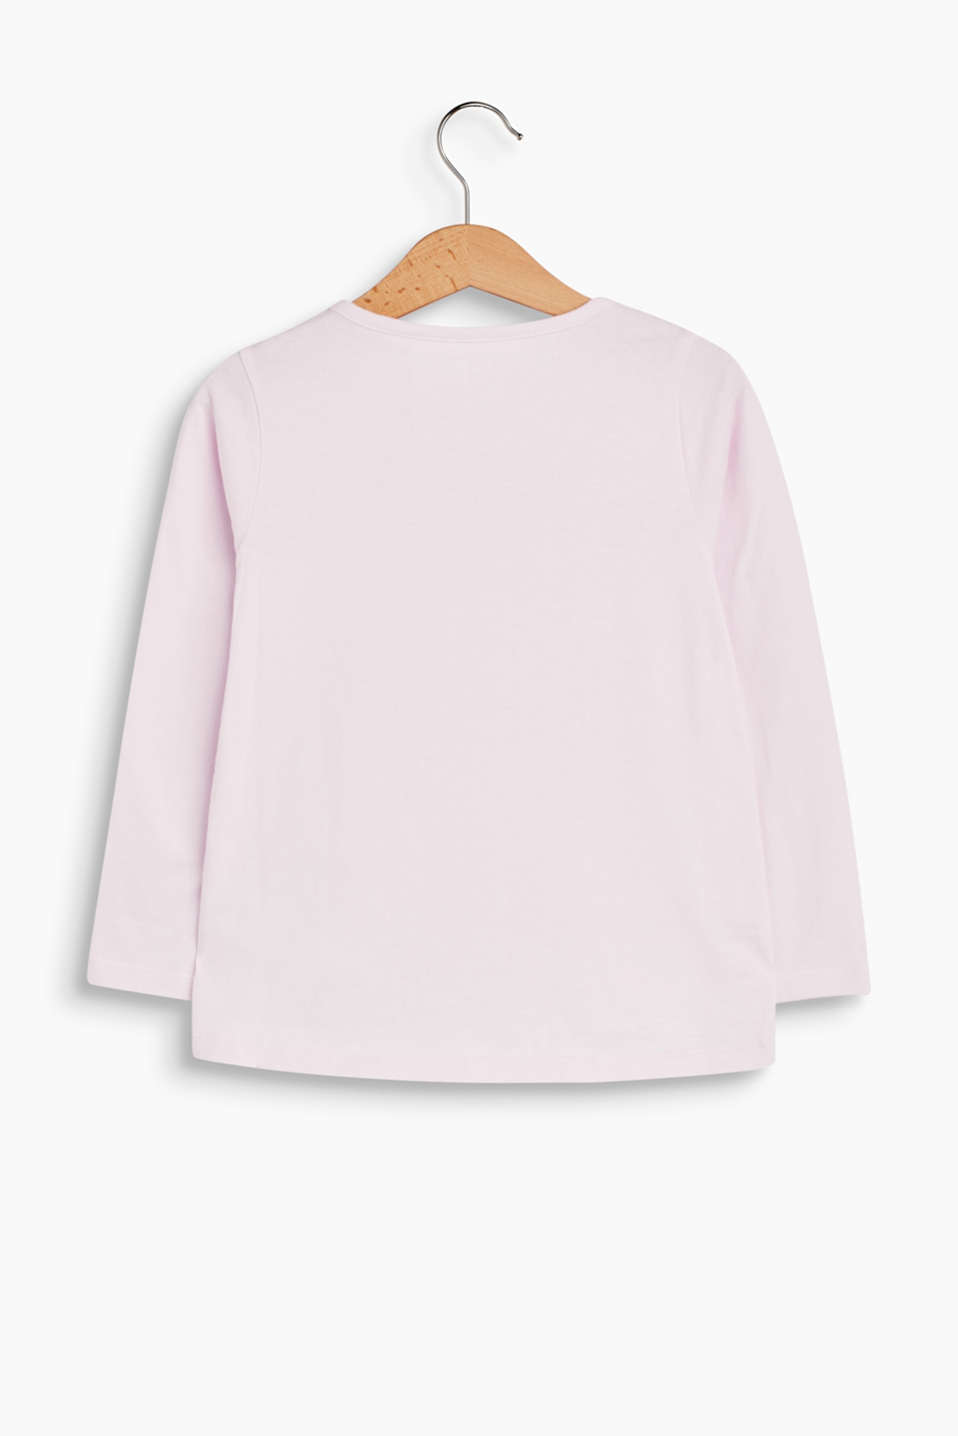 Frilled long sleeve top, 100% cotton